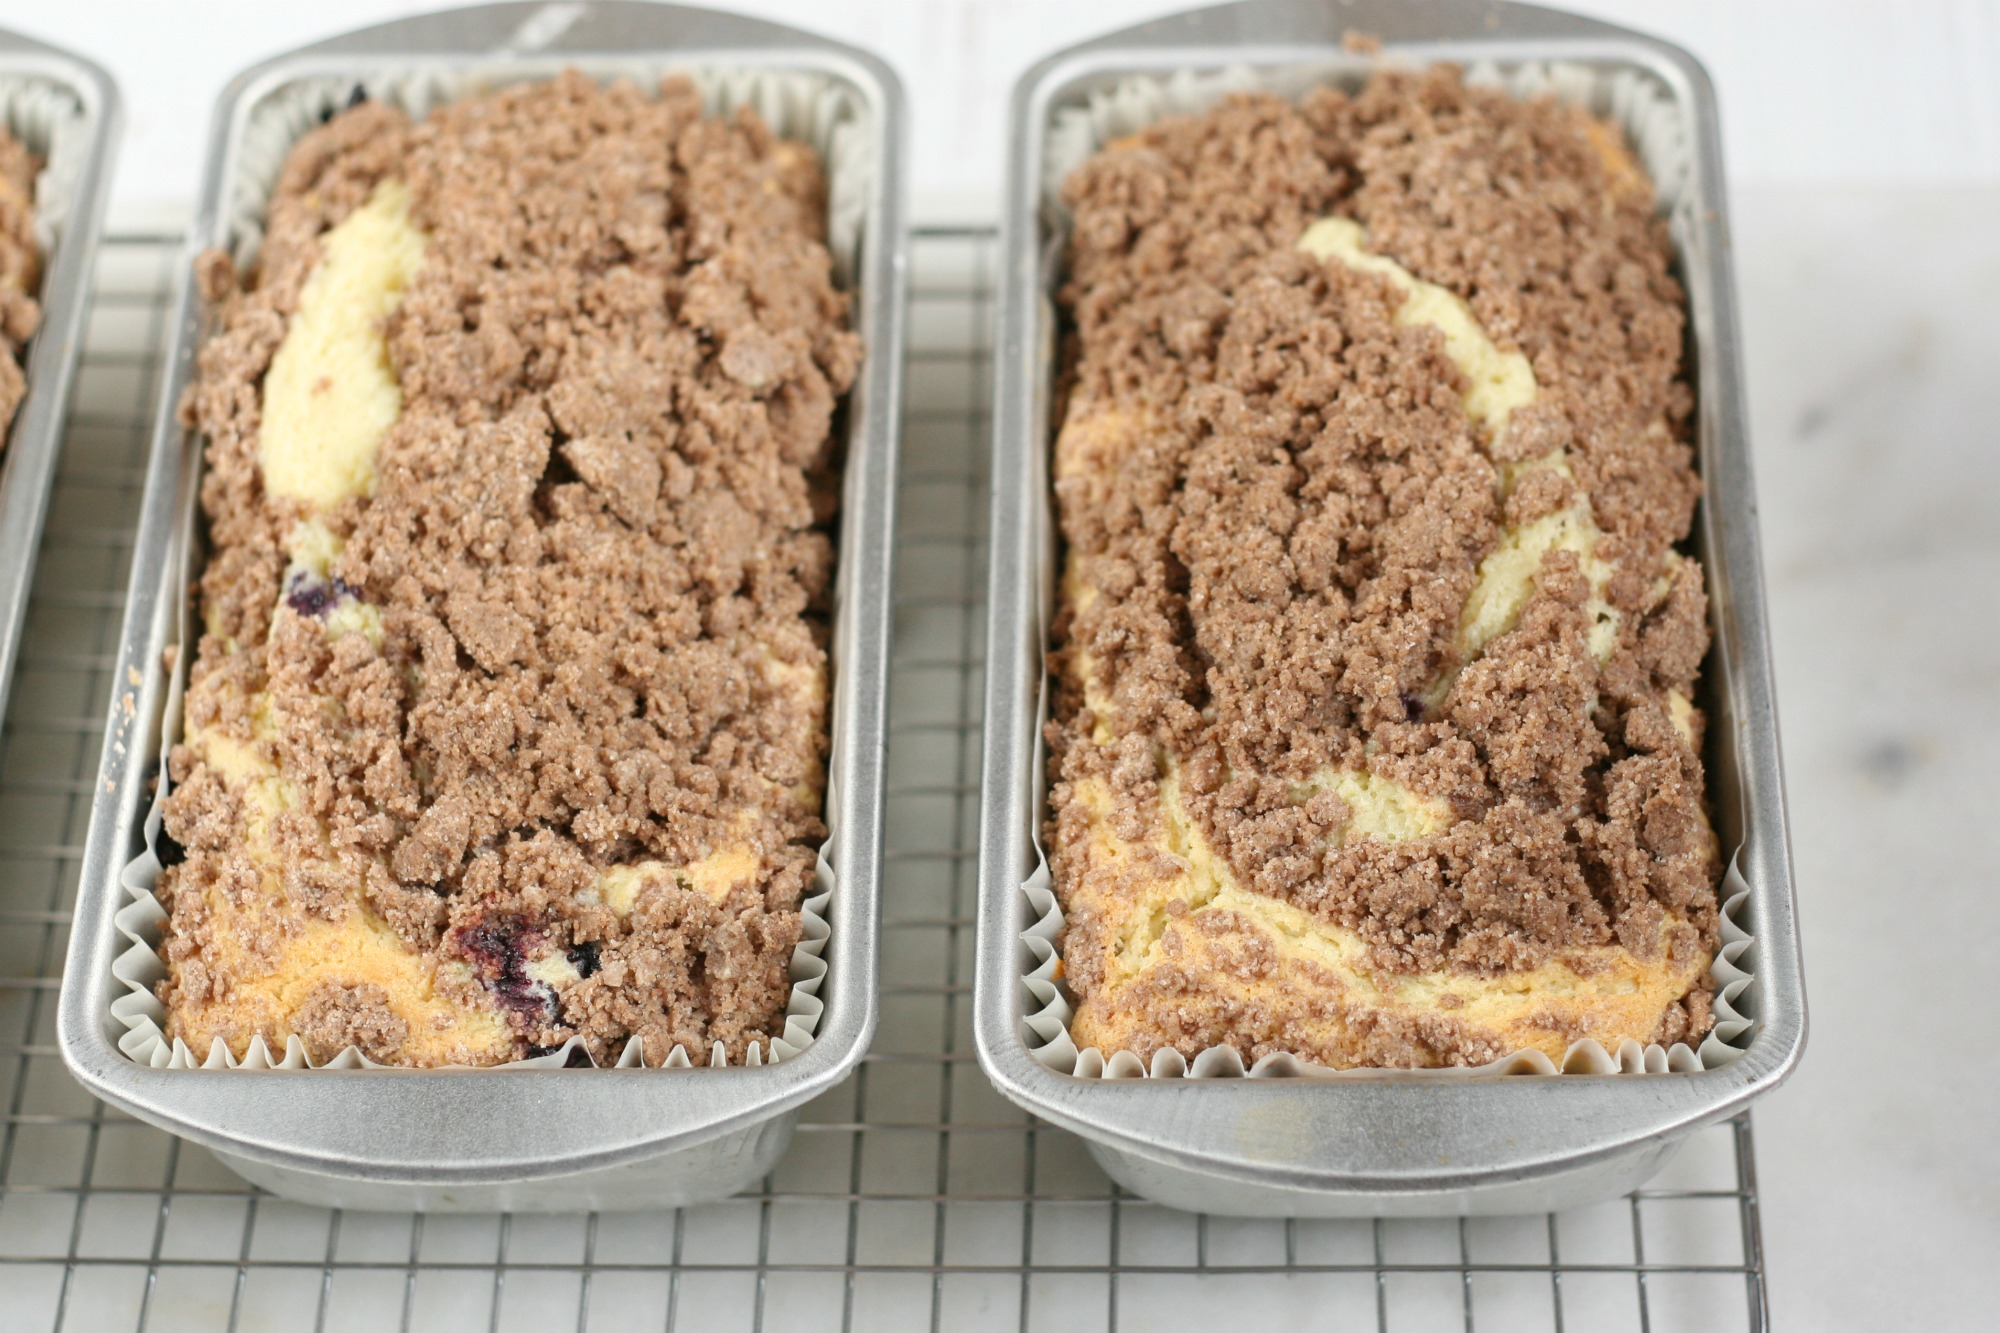 Blueberry Peach Coffee cakes in loaf pans cooling on a baking rack.